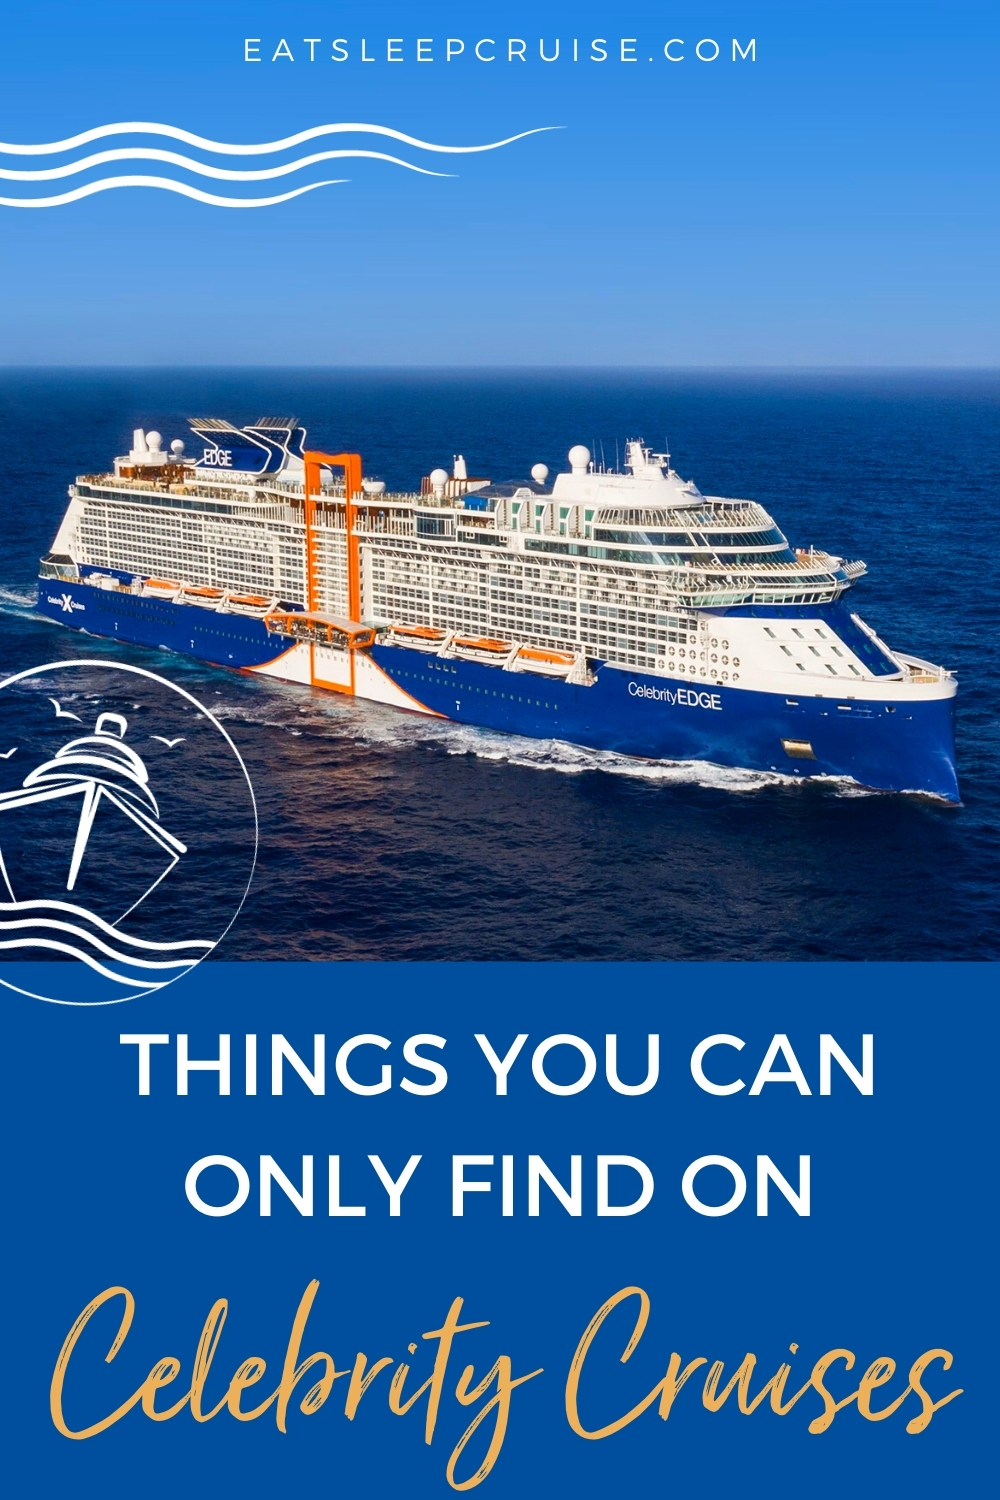 Top Things You Can Only Find on Celebrity Cruises